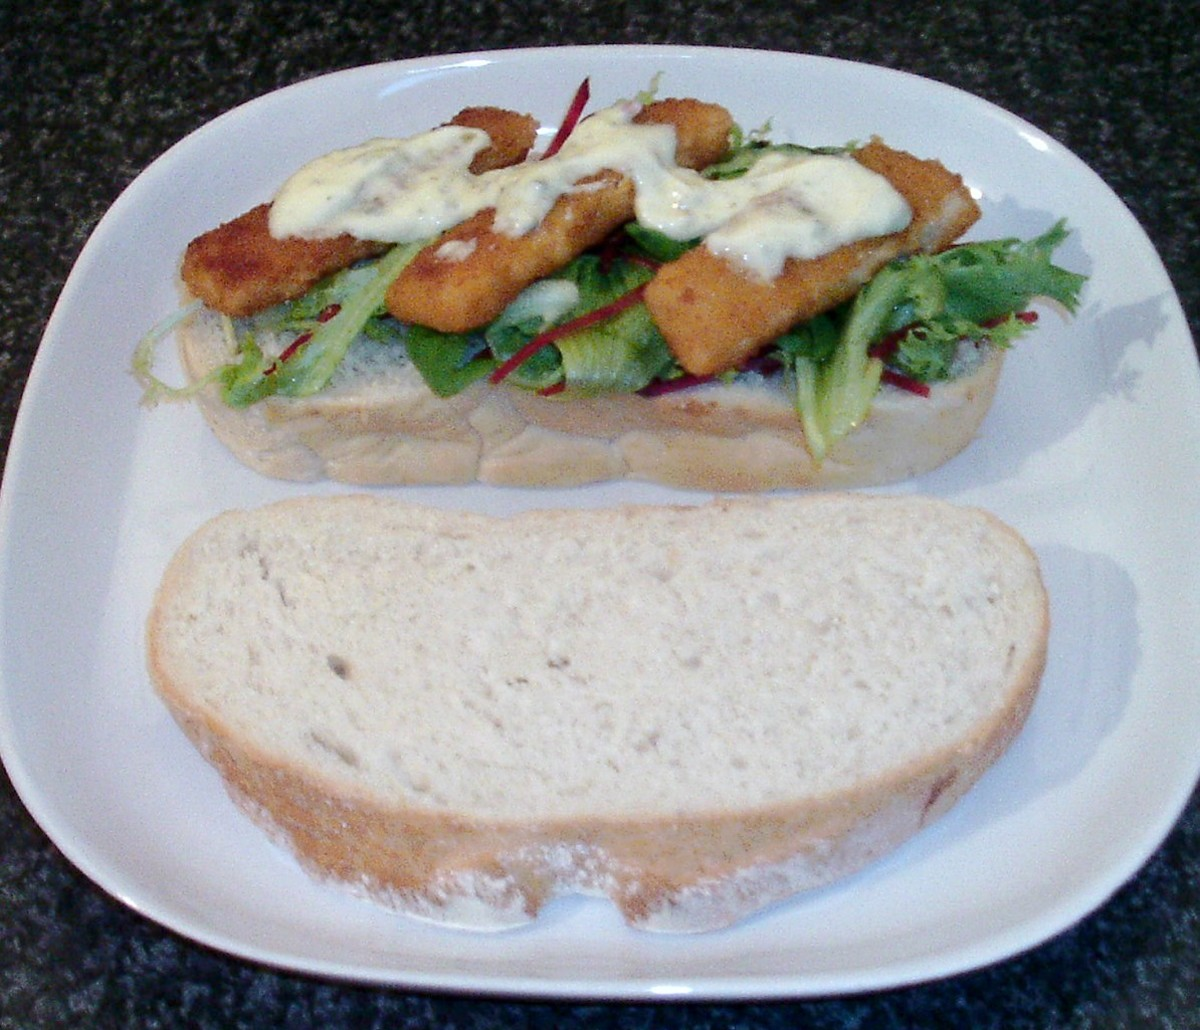 Fish fingers are laid on a crunchy mixed salad bread and spread with tartar sauce